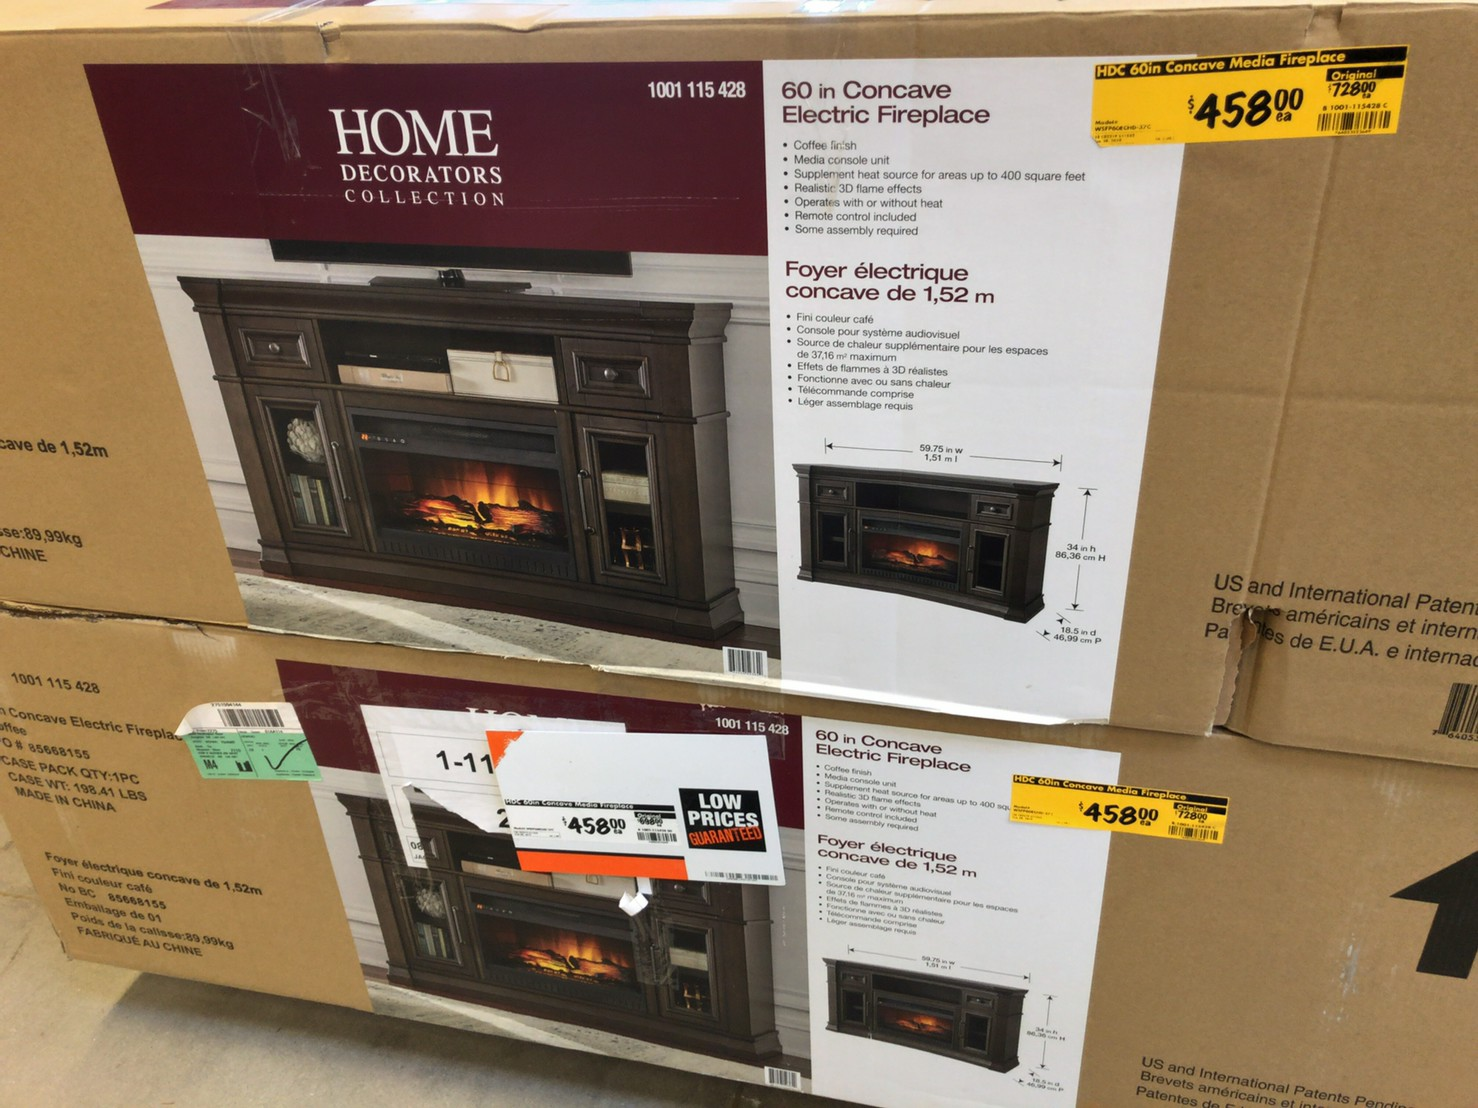 The home depot Fireplace